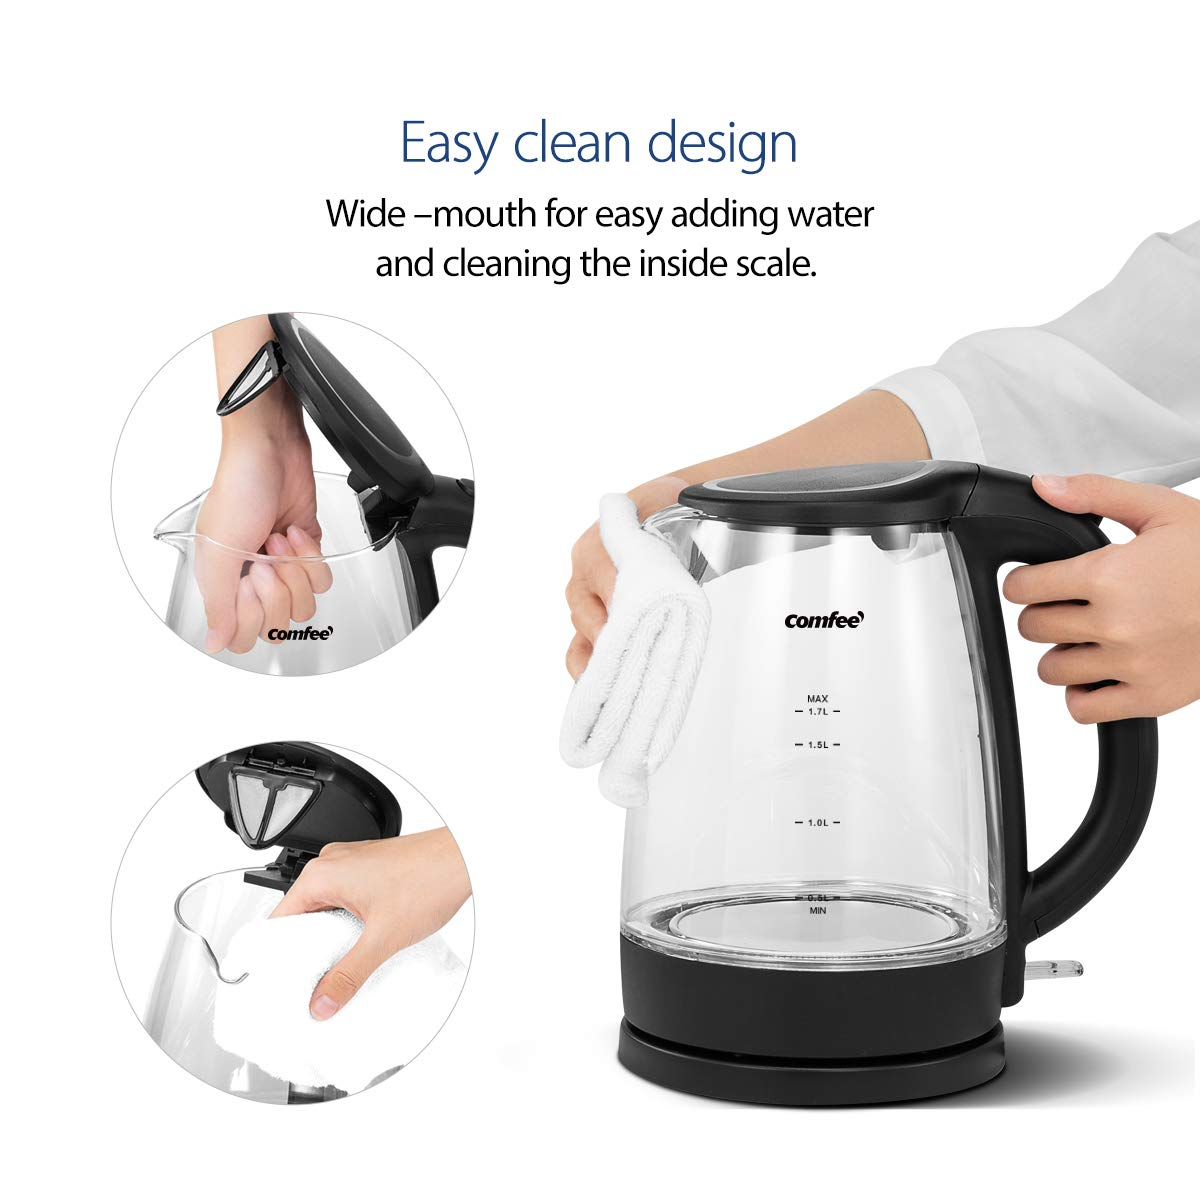 1.7 Liter 1500W Fast Heating with Auto Shut-Off and Boil-Dry Protection Comfee Glass Cordless Electric Kettle